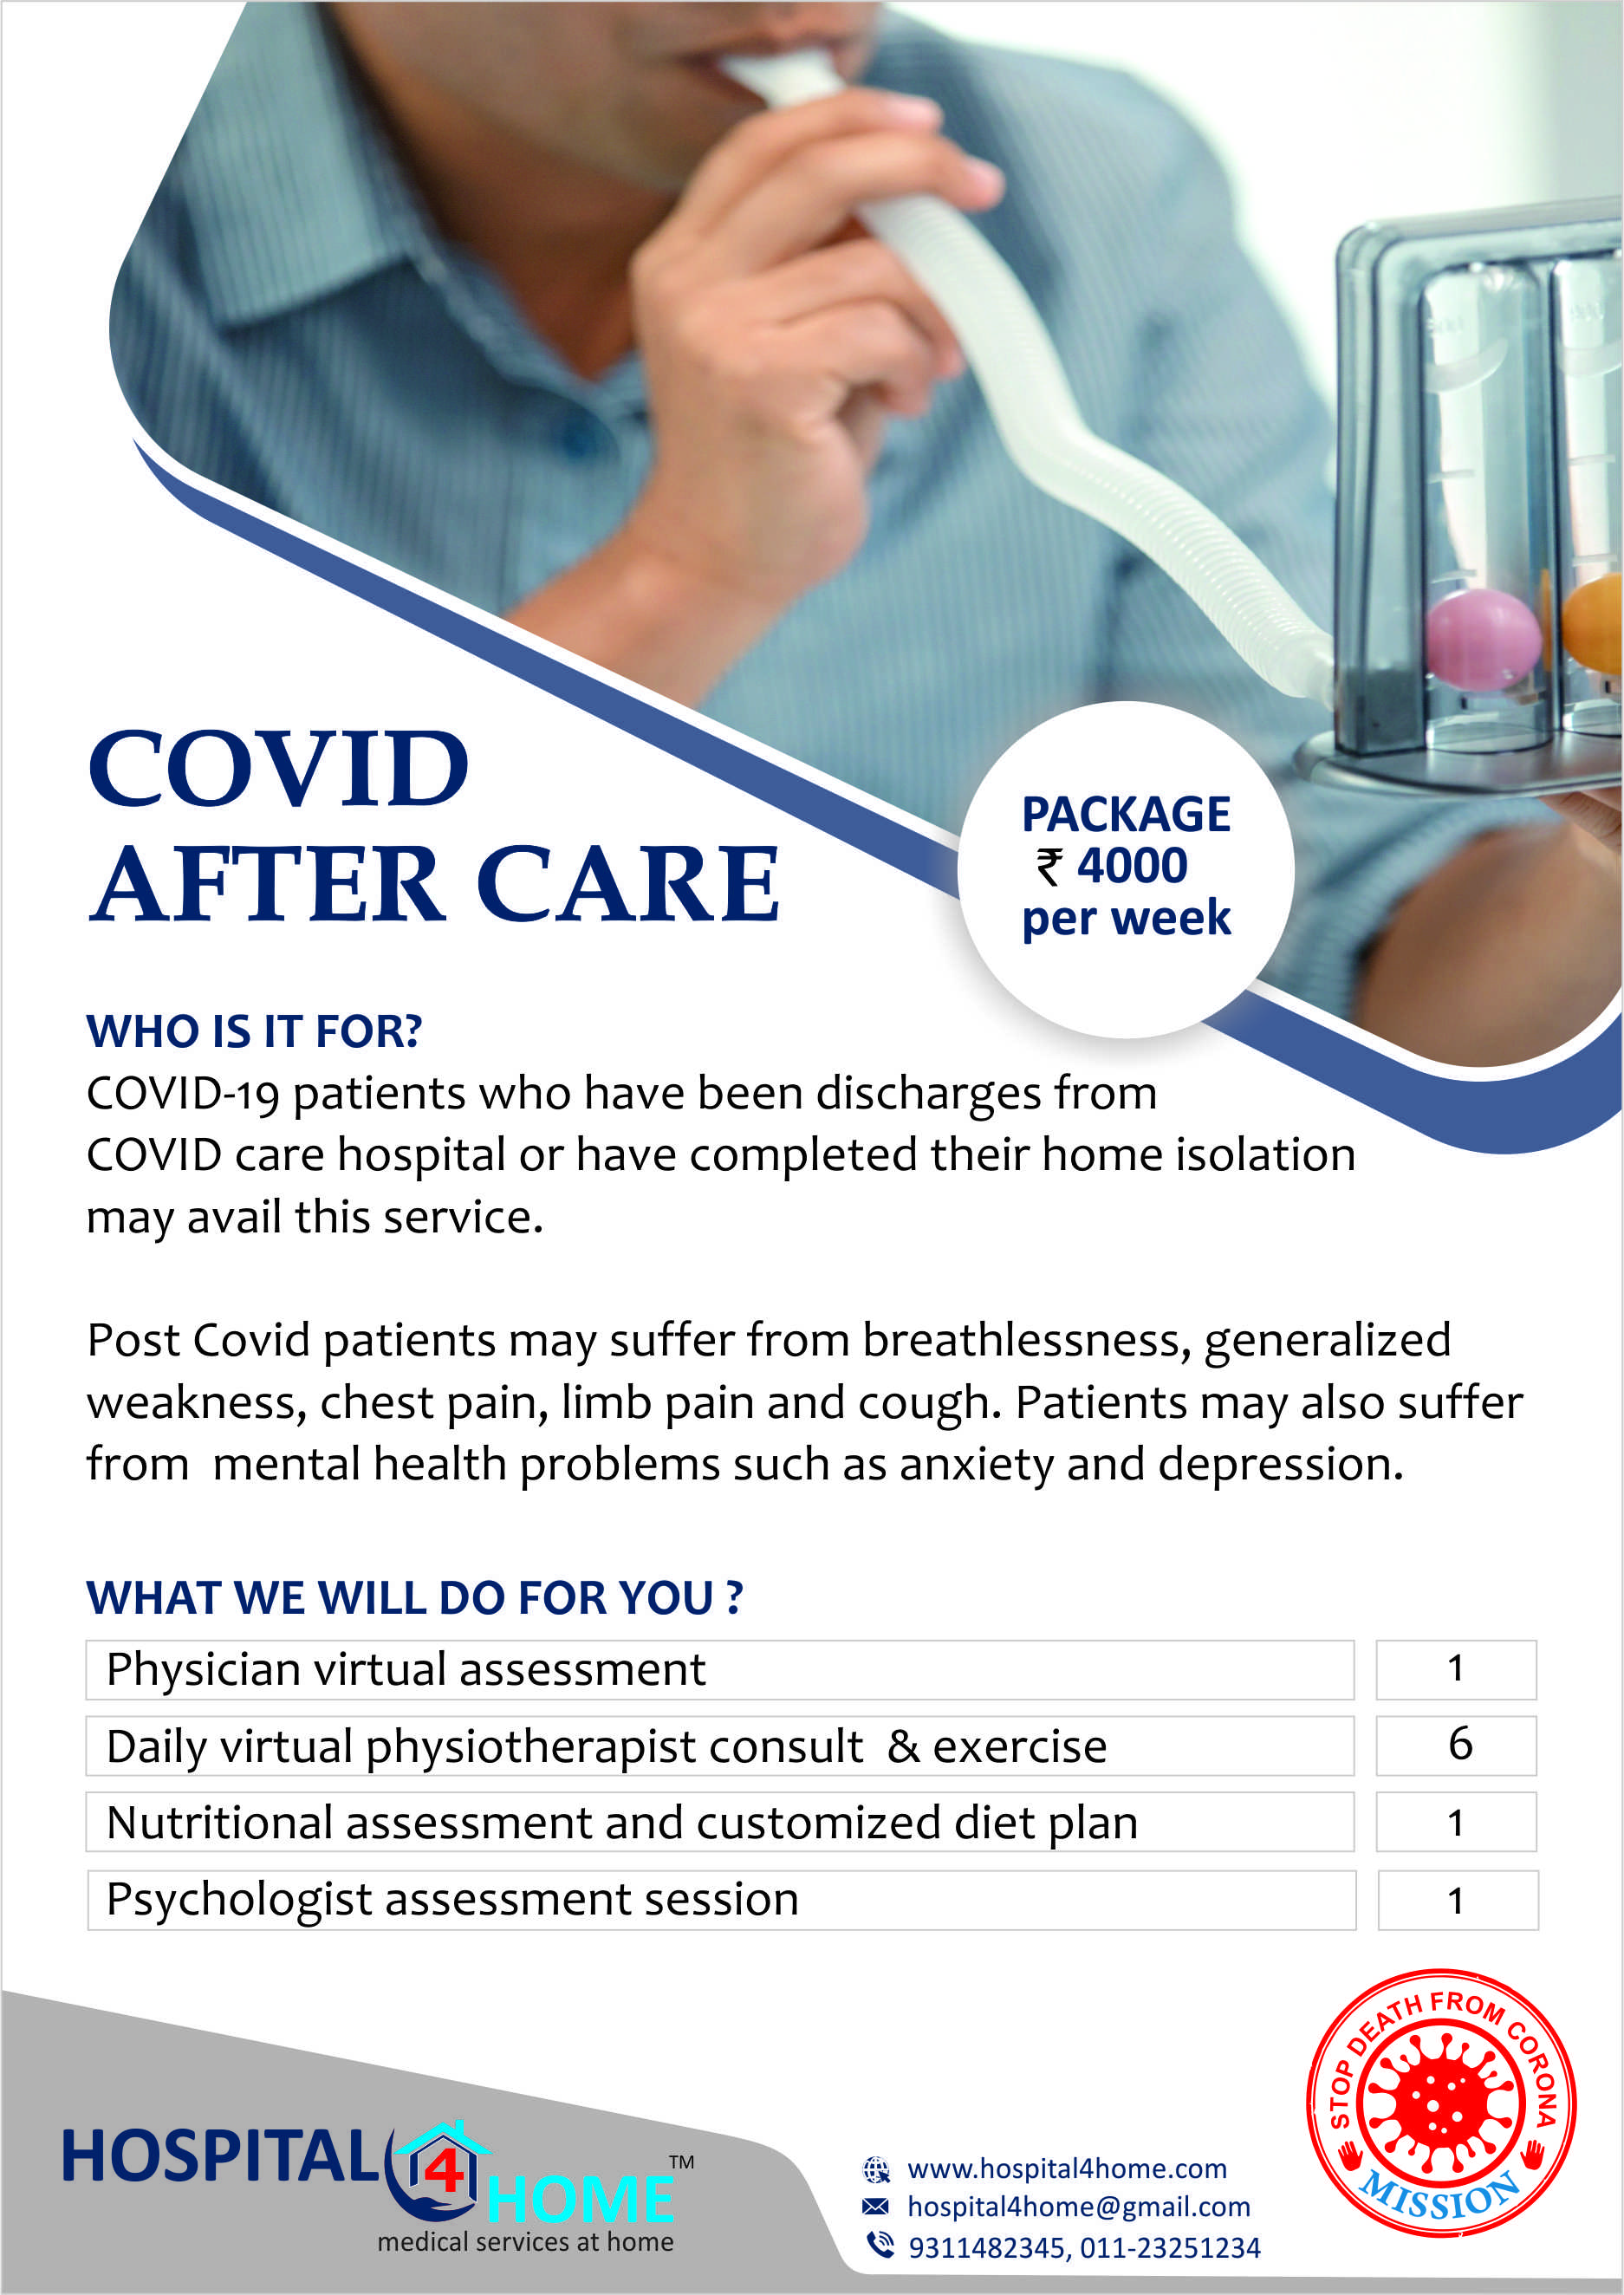 COVID AFTER CARE